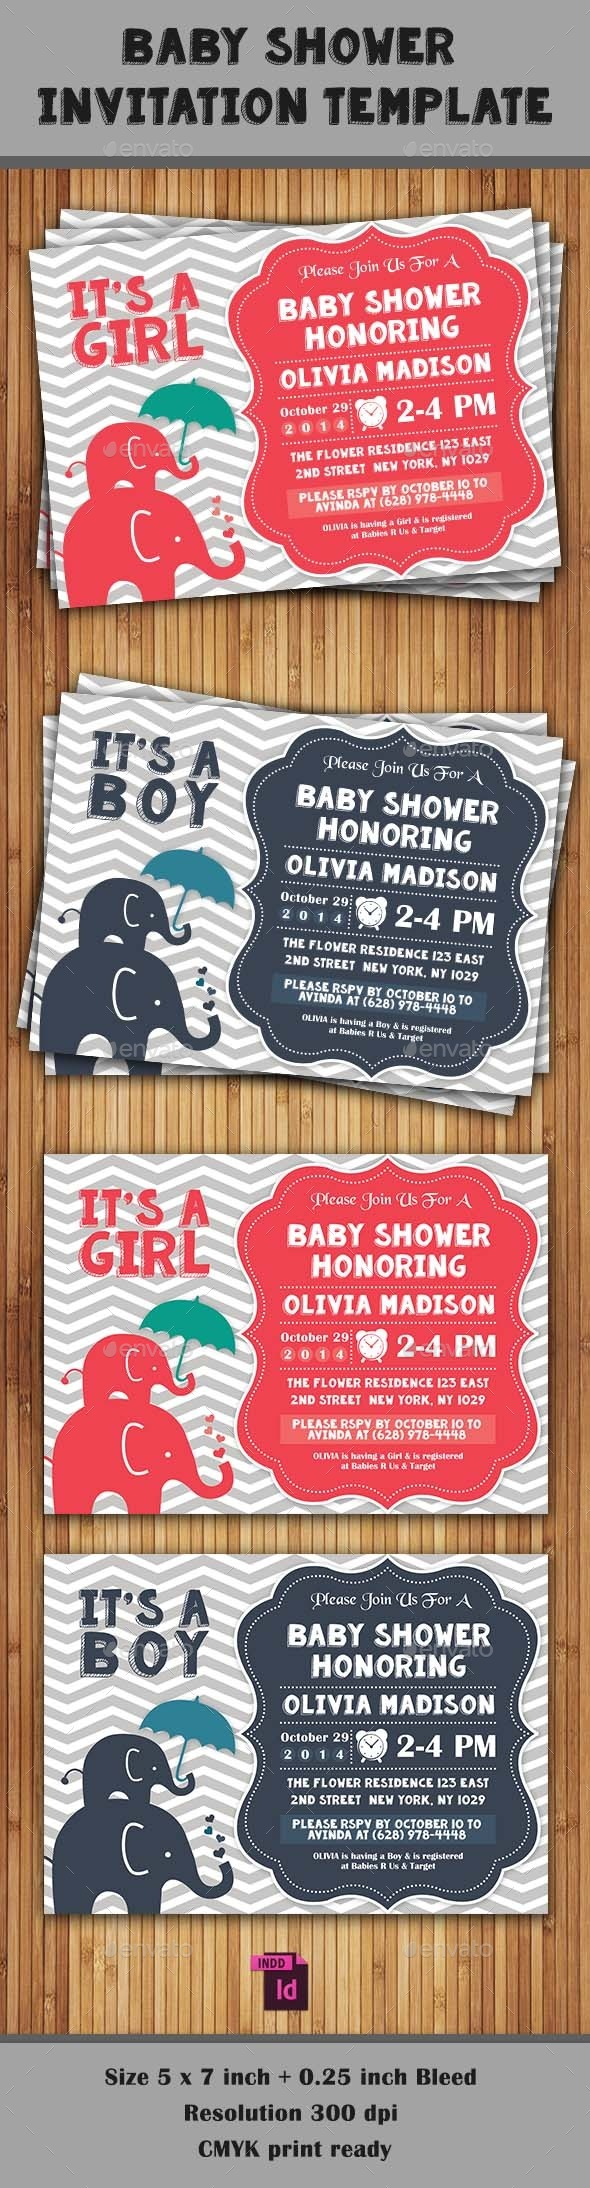 Baby Shower Template - Vol. 8 - Invitations Cards & Invites